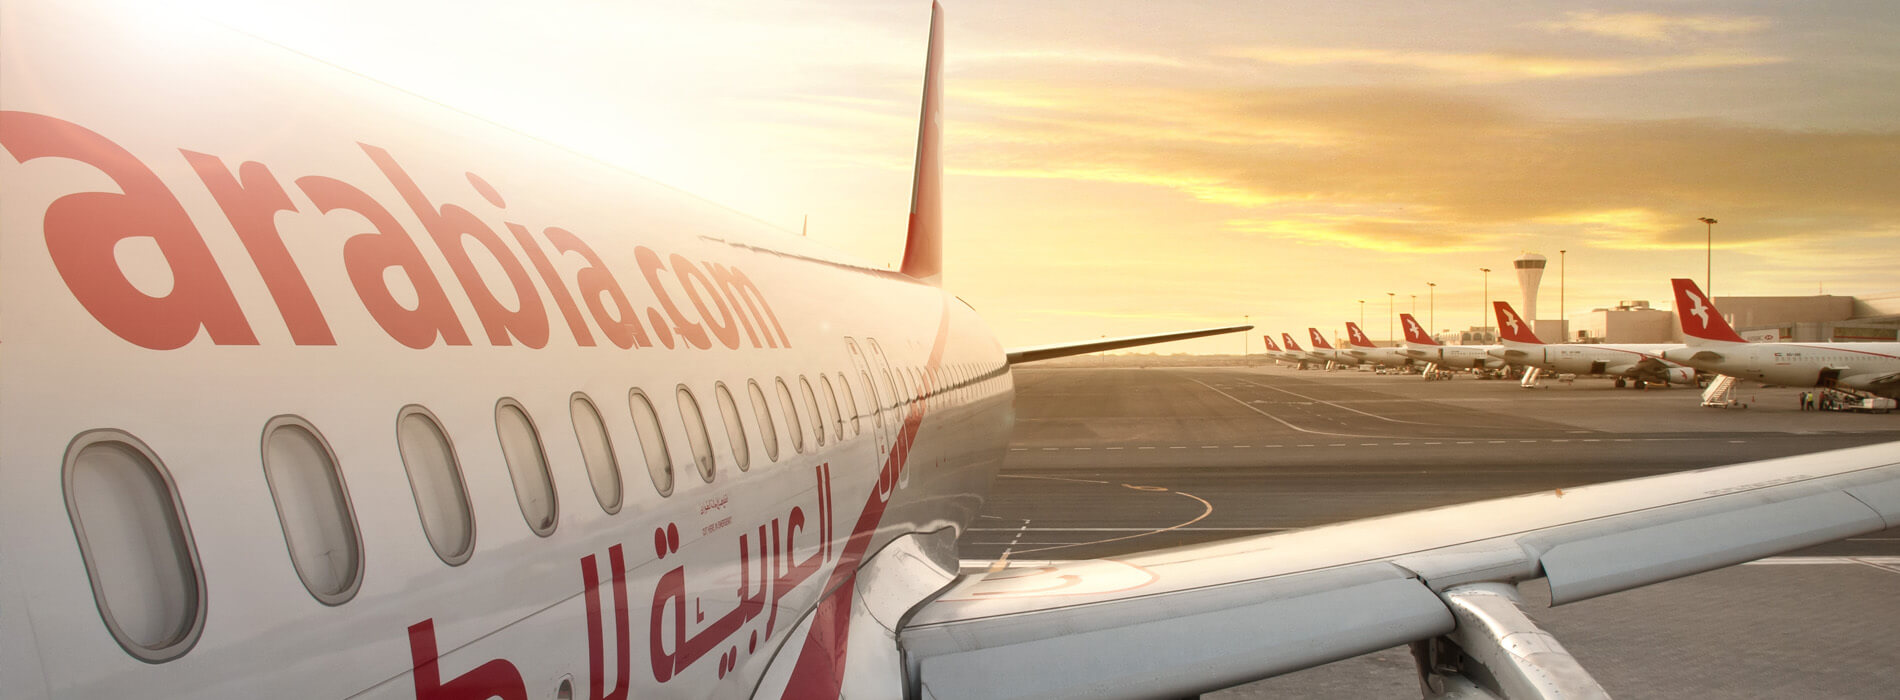 Remarketing Revealed: The Air Arabia Story